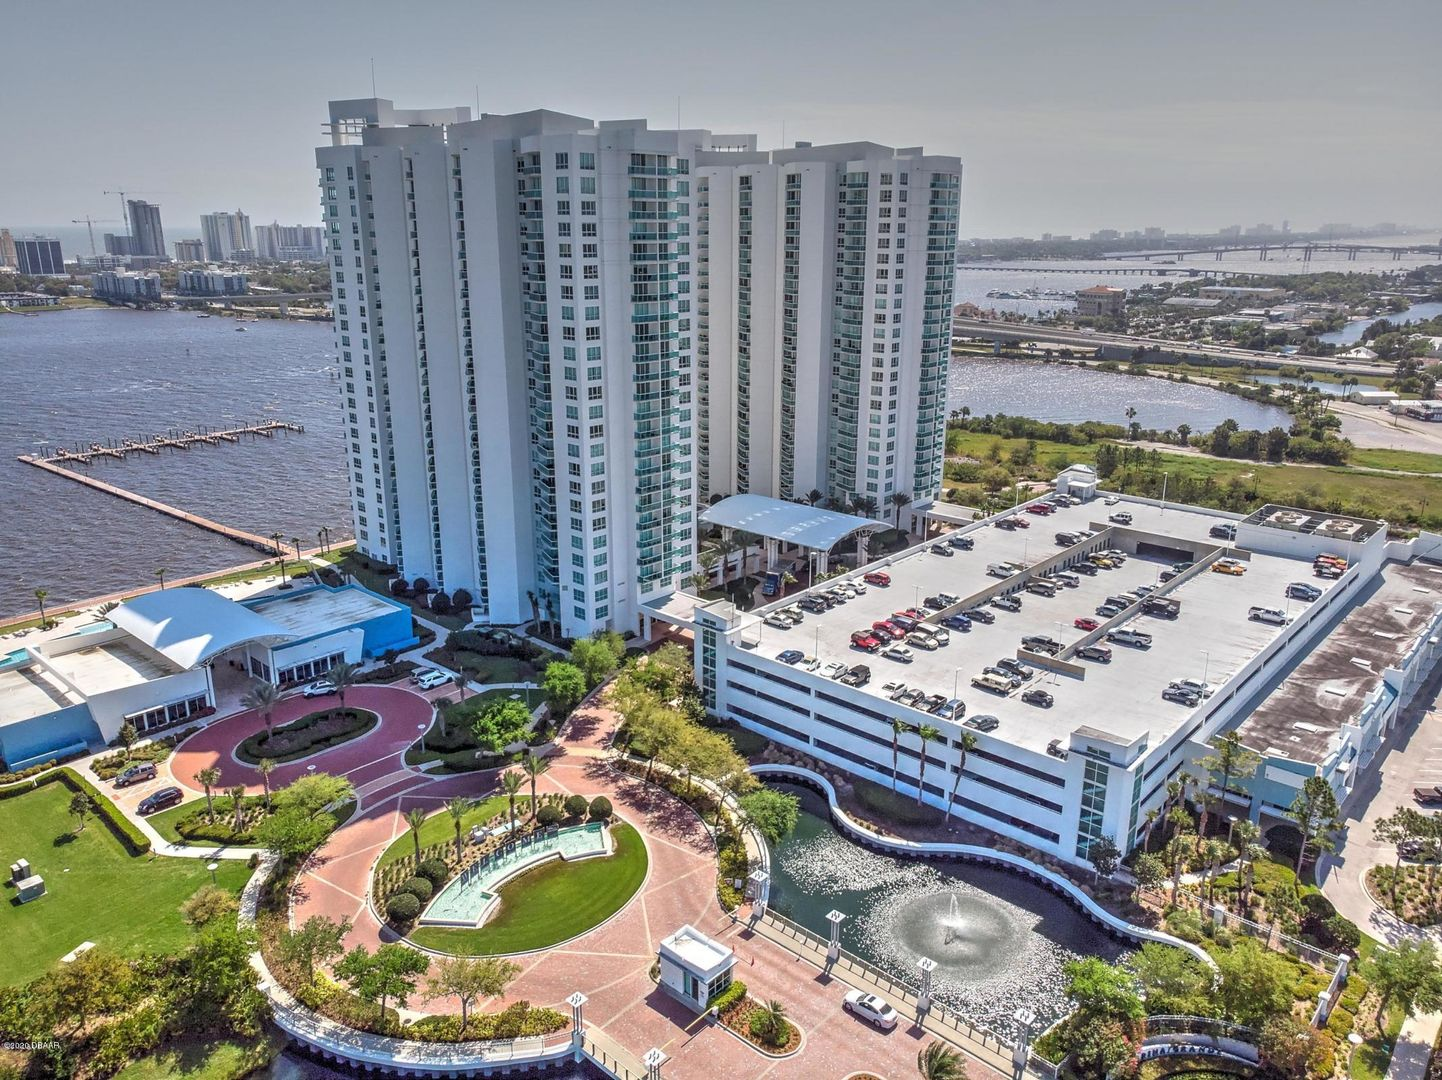 Find Your Ideal Condos With Ocean Views In Daytona Beach